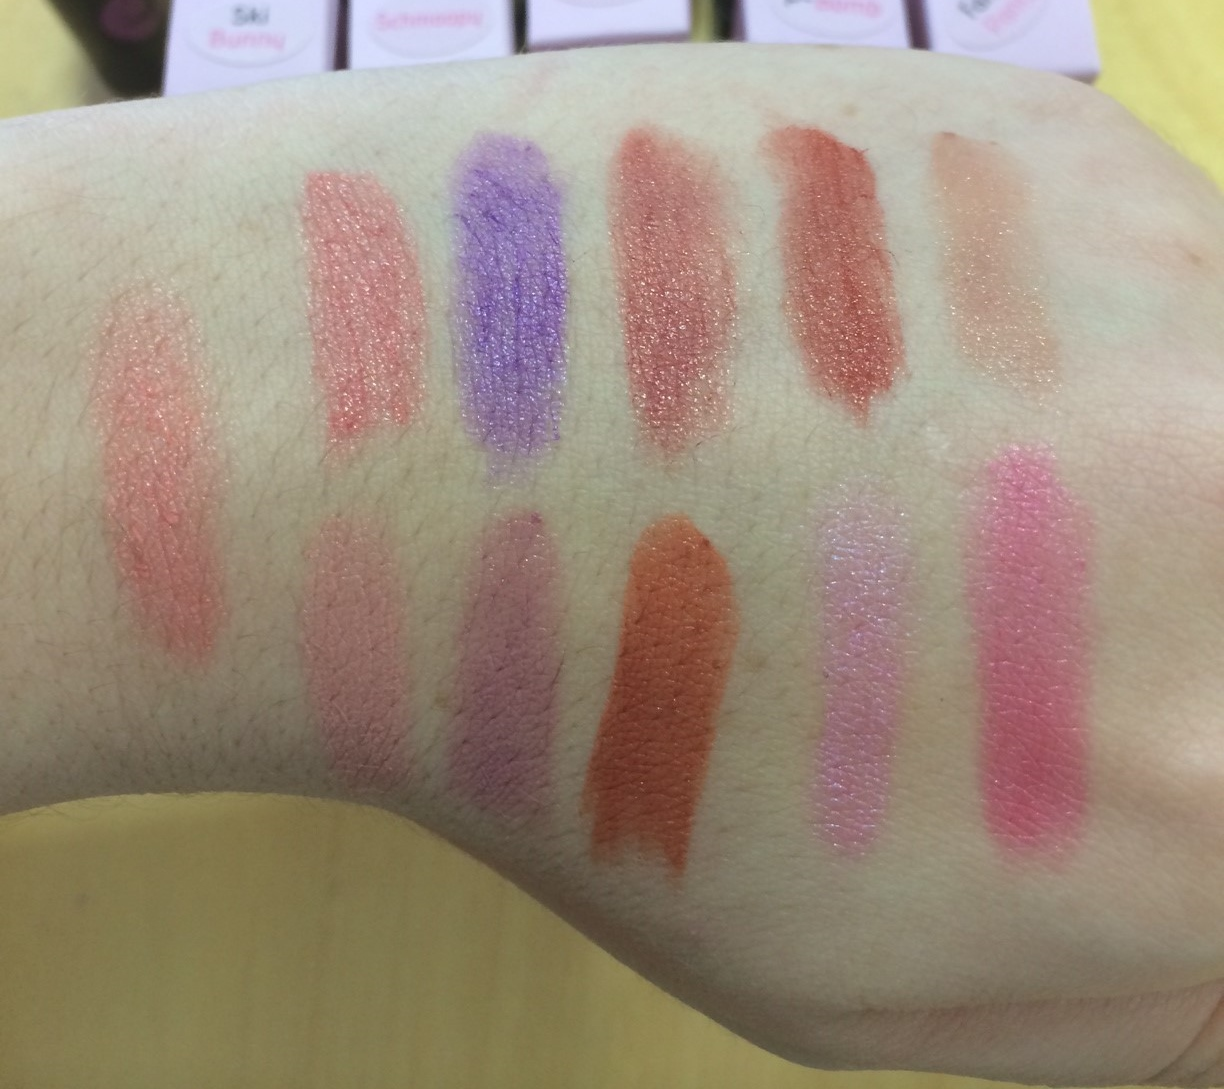 Lippy Girl Vegan Lipstick Swatches